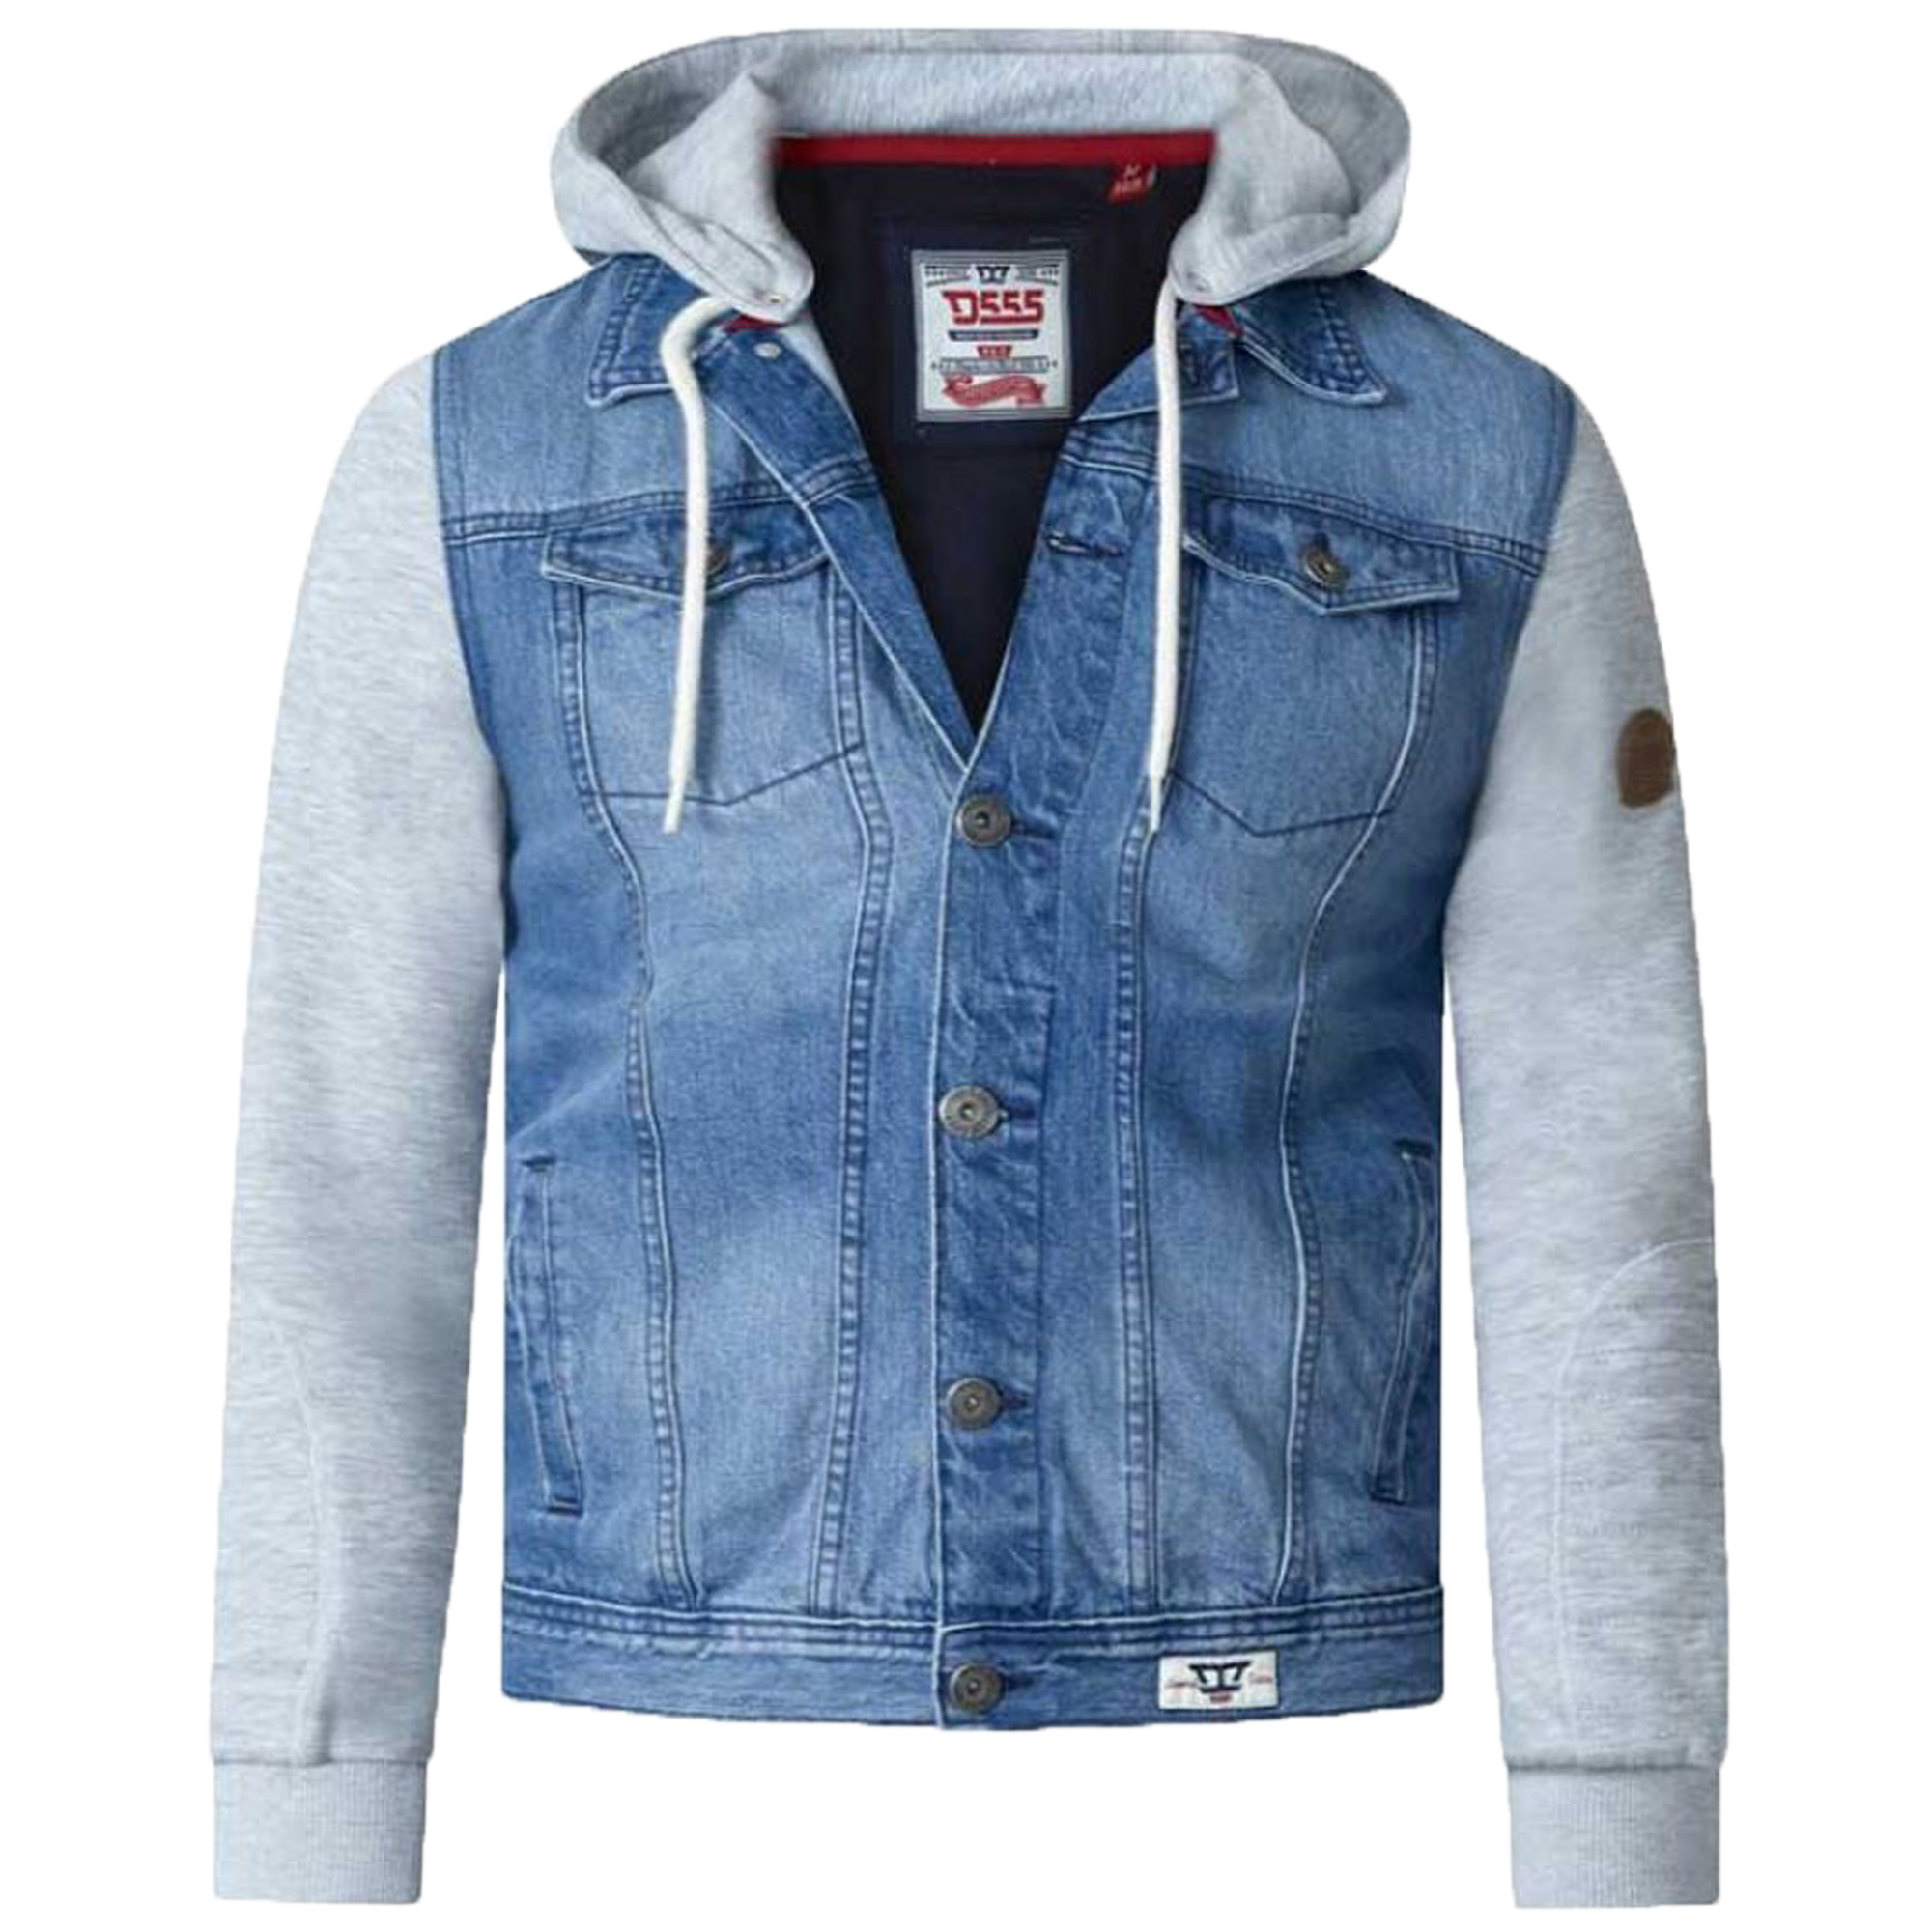 d19aa253d5 Mens Denim Jacket D555 Duke Big King Size Western Style Coat Vintage ...